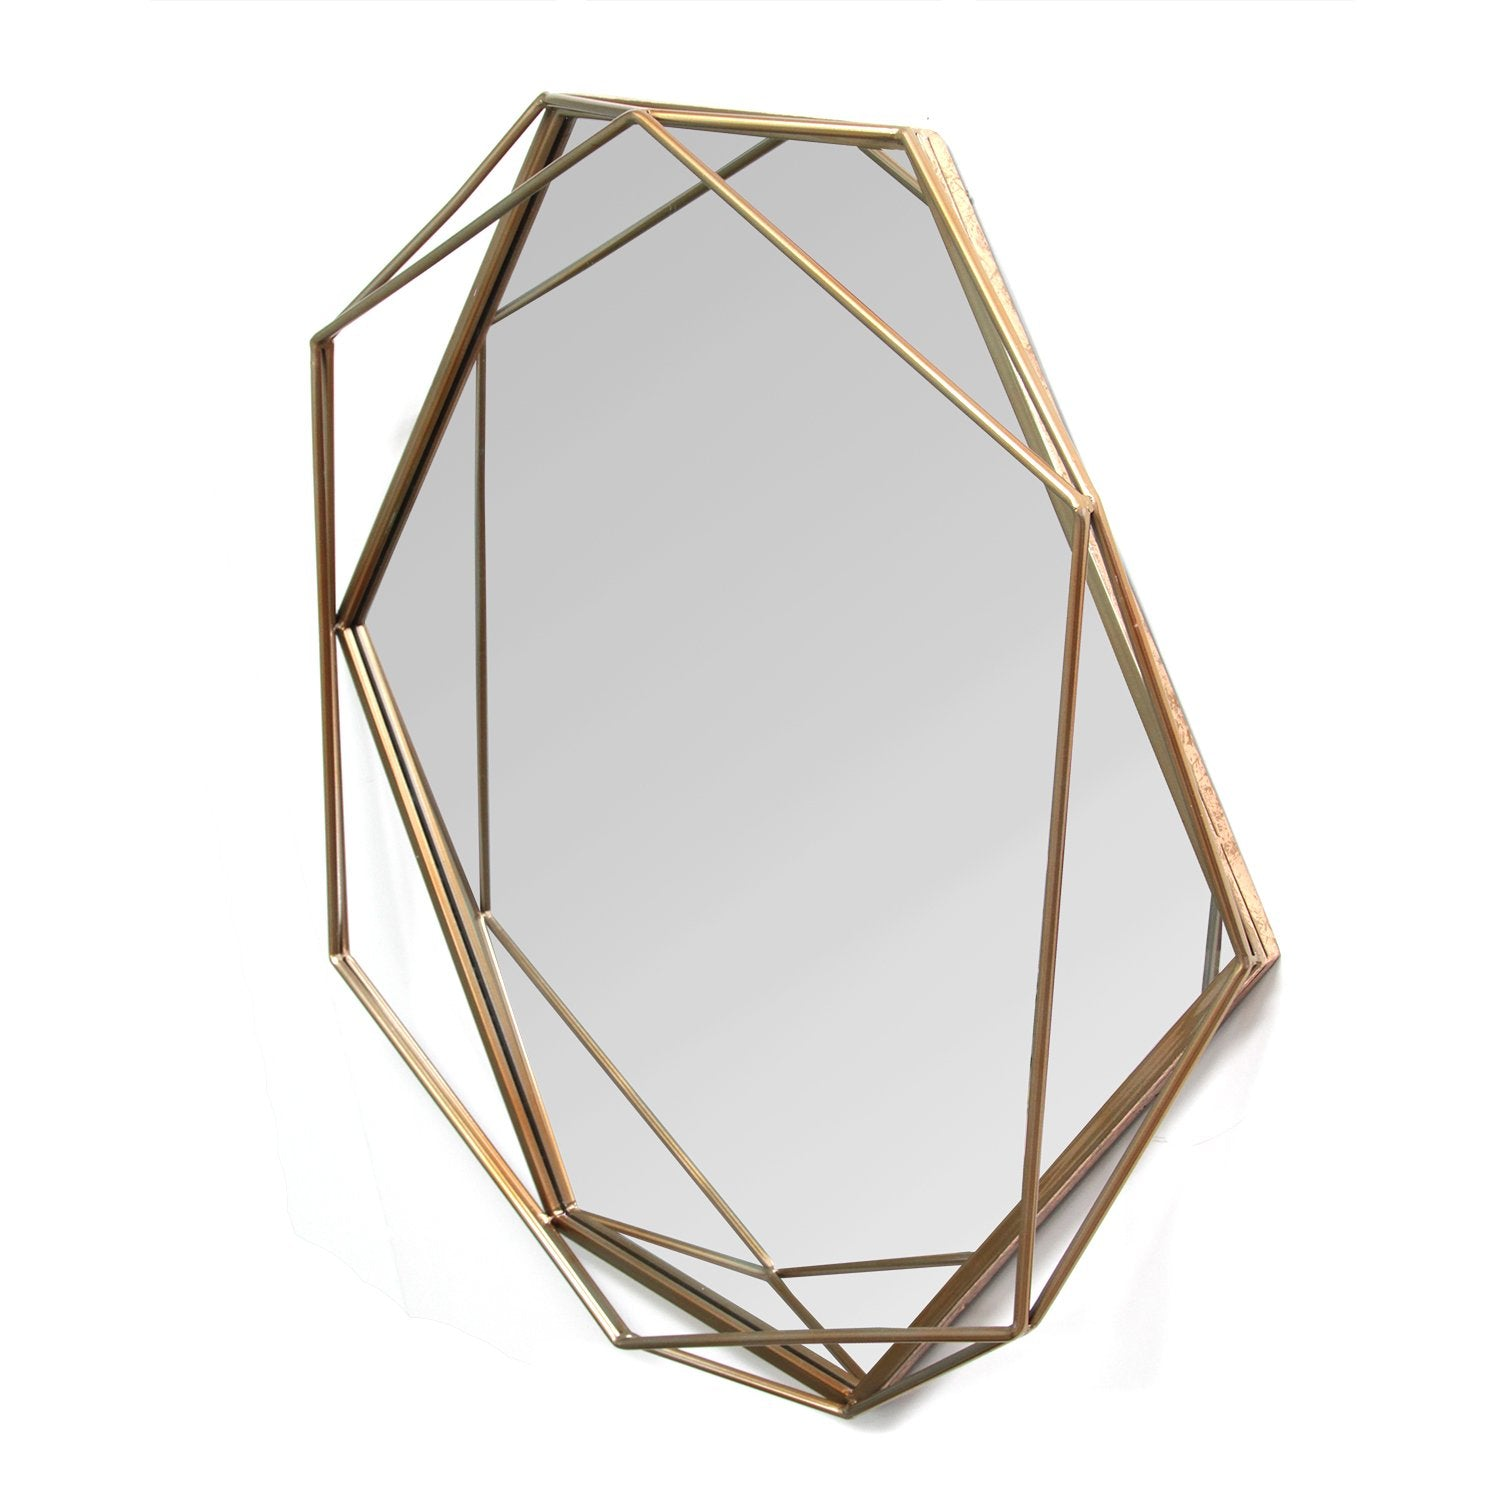 "31.5"" X 3.15"" X 29.53"" Gold Octagon-Shaped Wall Mirror"